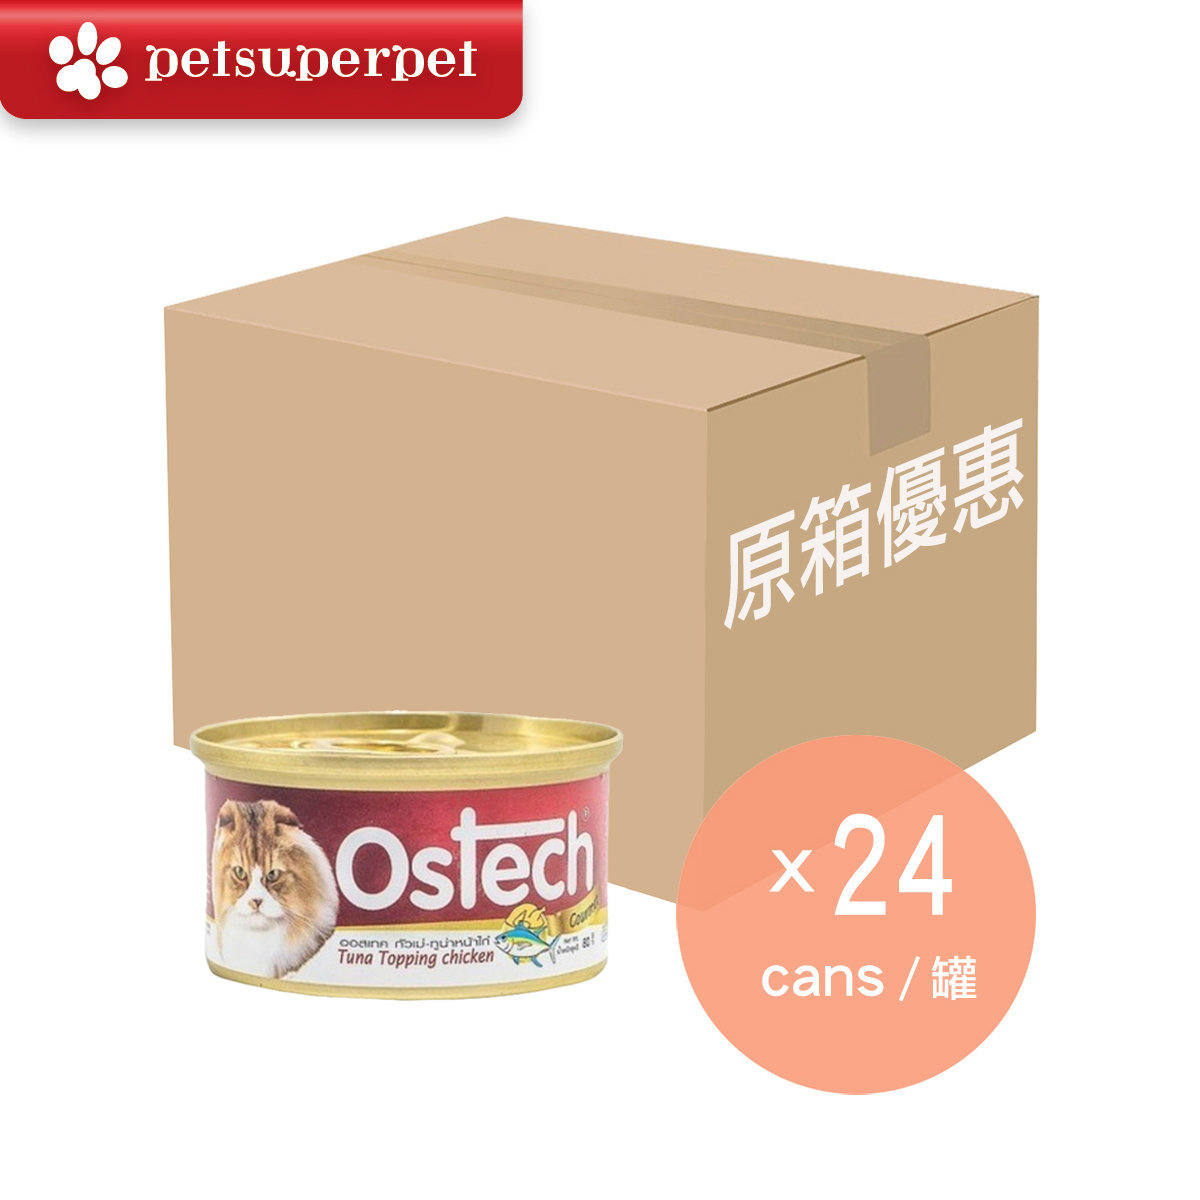 【Full Case】Thailand Tuna Topping Chicken Cat Food (24 cans) - 80g x 24